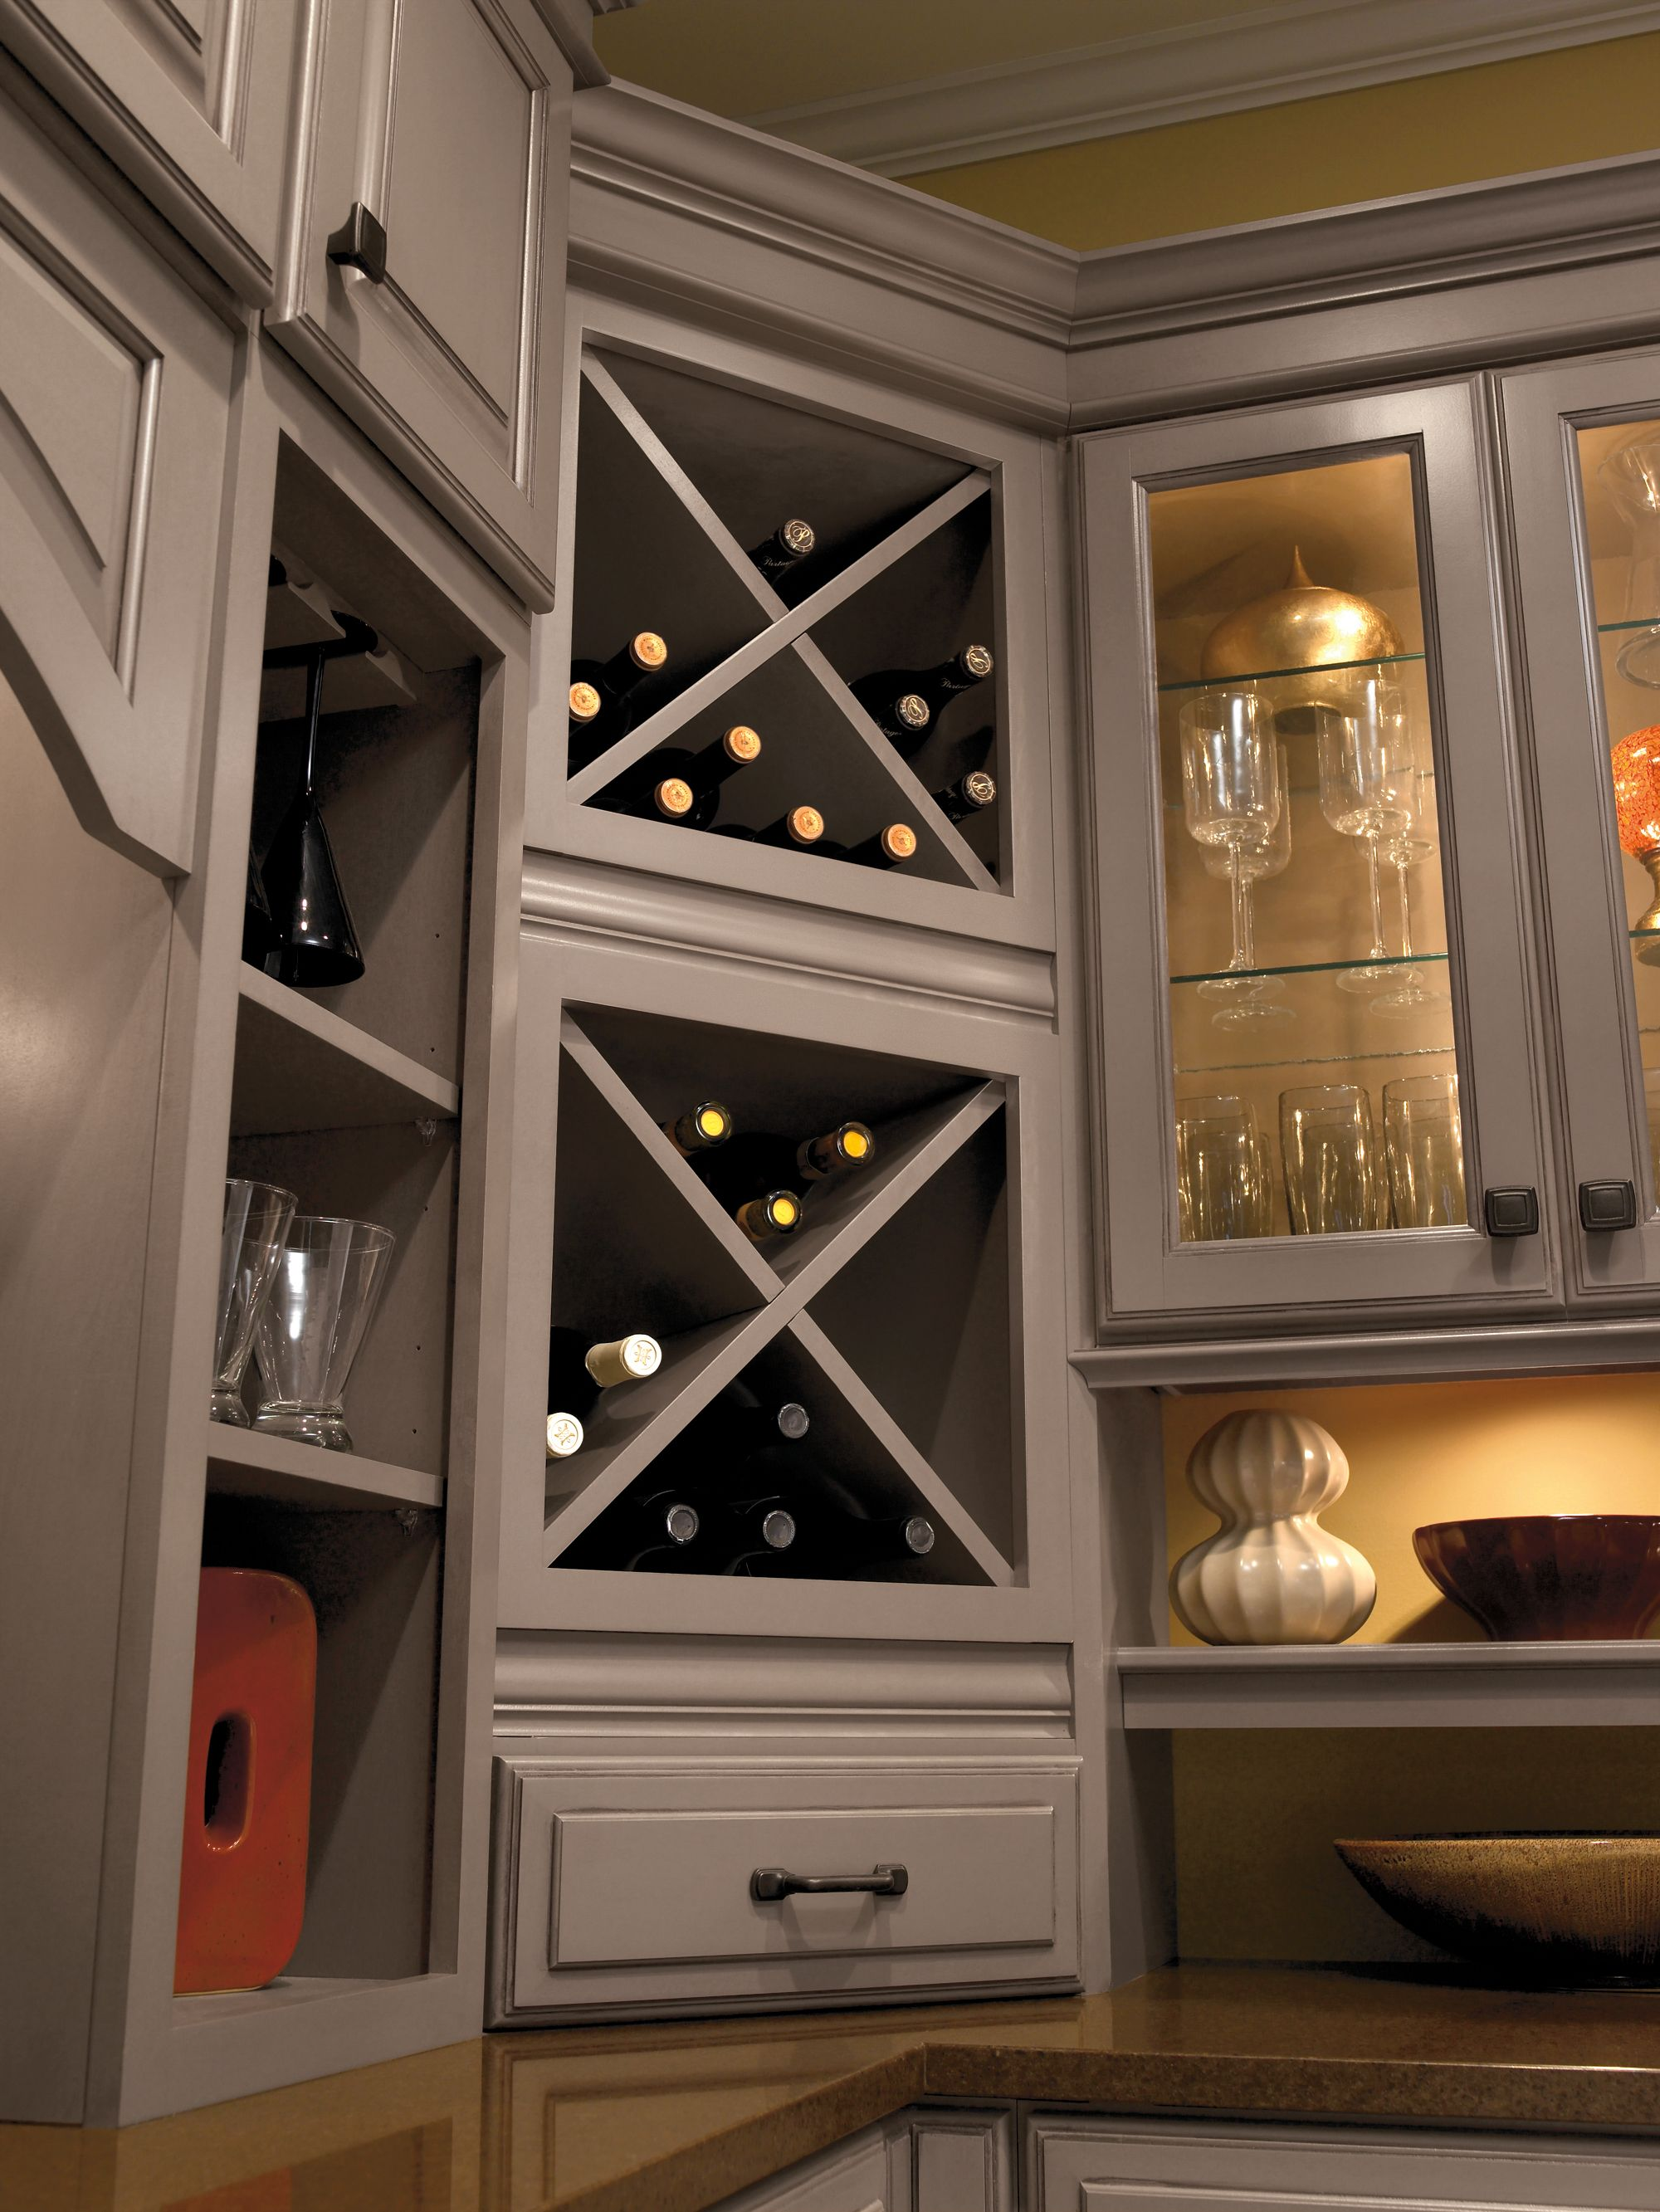 Built in wine racks for kitchen cabinets - Built In Wine Rack Cabinet Storage Schrock Masterbrand Csikitchenandbath